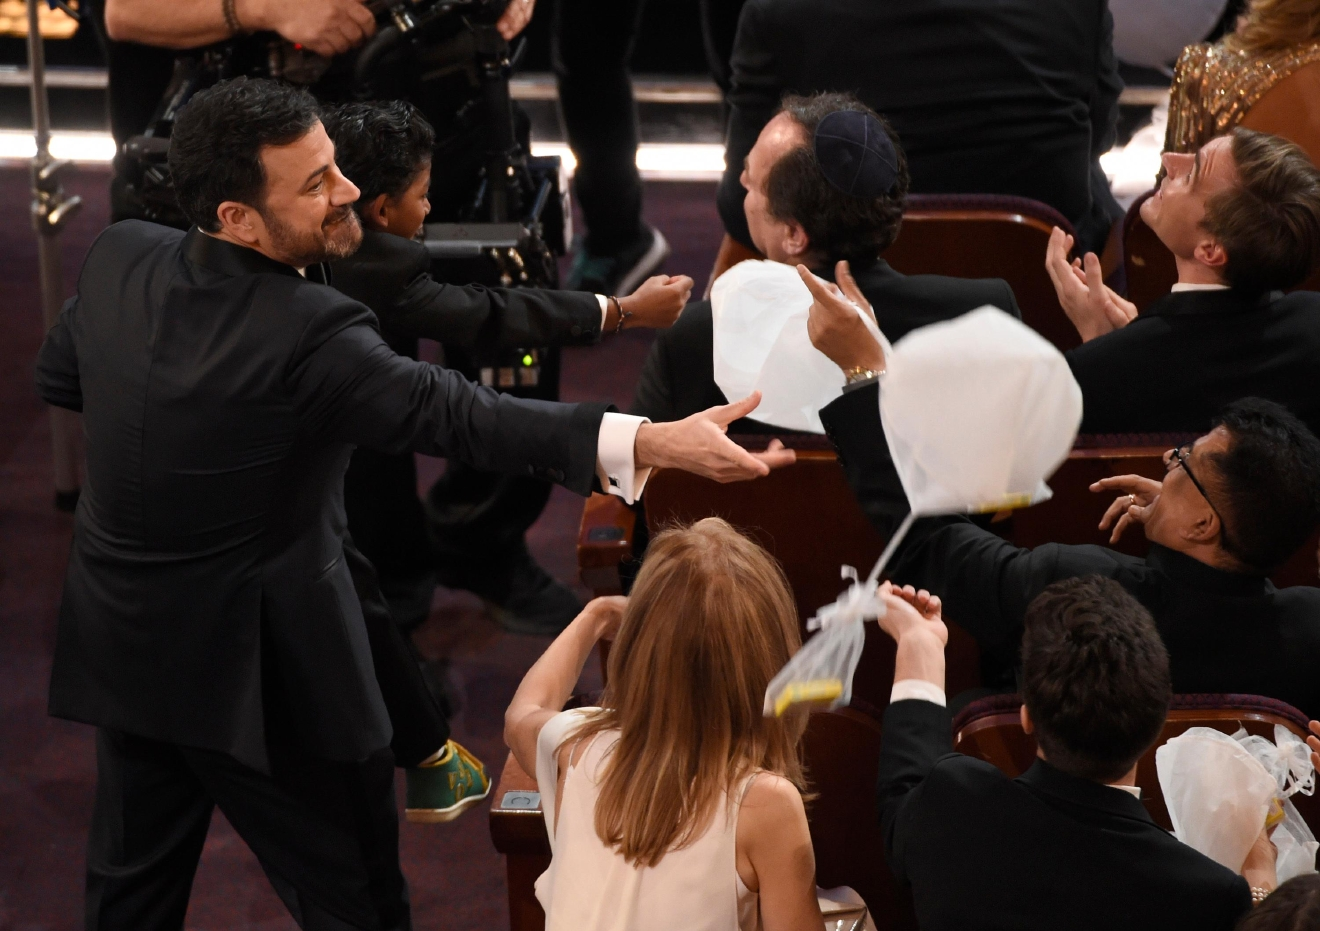 Host Jimmy Kimmel, left, raises Sunny Pawar as candy balloons fall on the audience at the Oscars on Sunday, Feb. 26, 2017, at the Dolby Theatre in Los Angeles. (Photo by Chris Pizzello/Invision/AP)